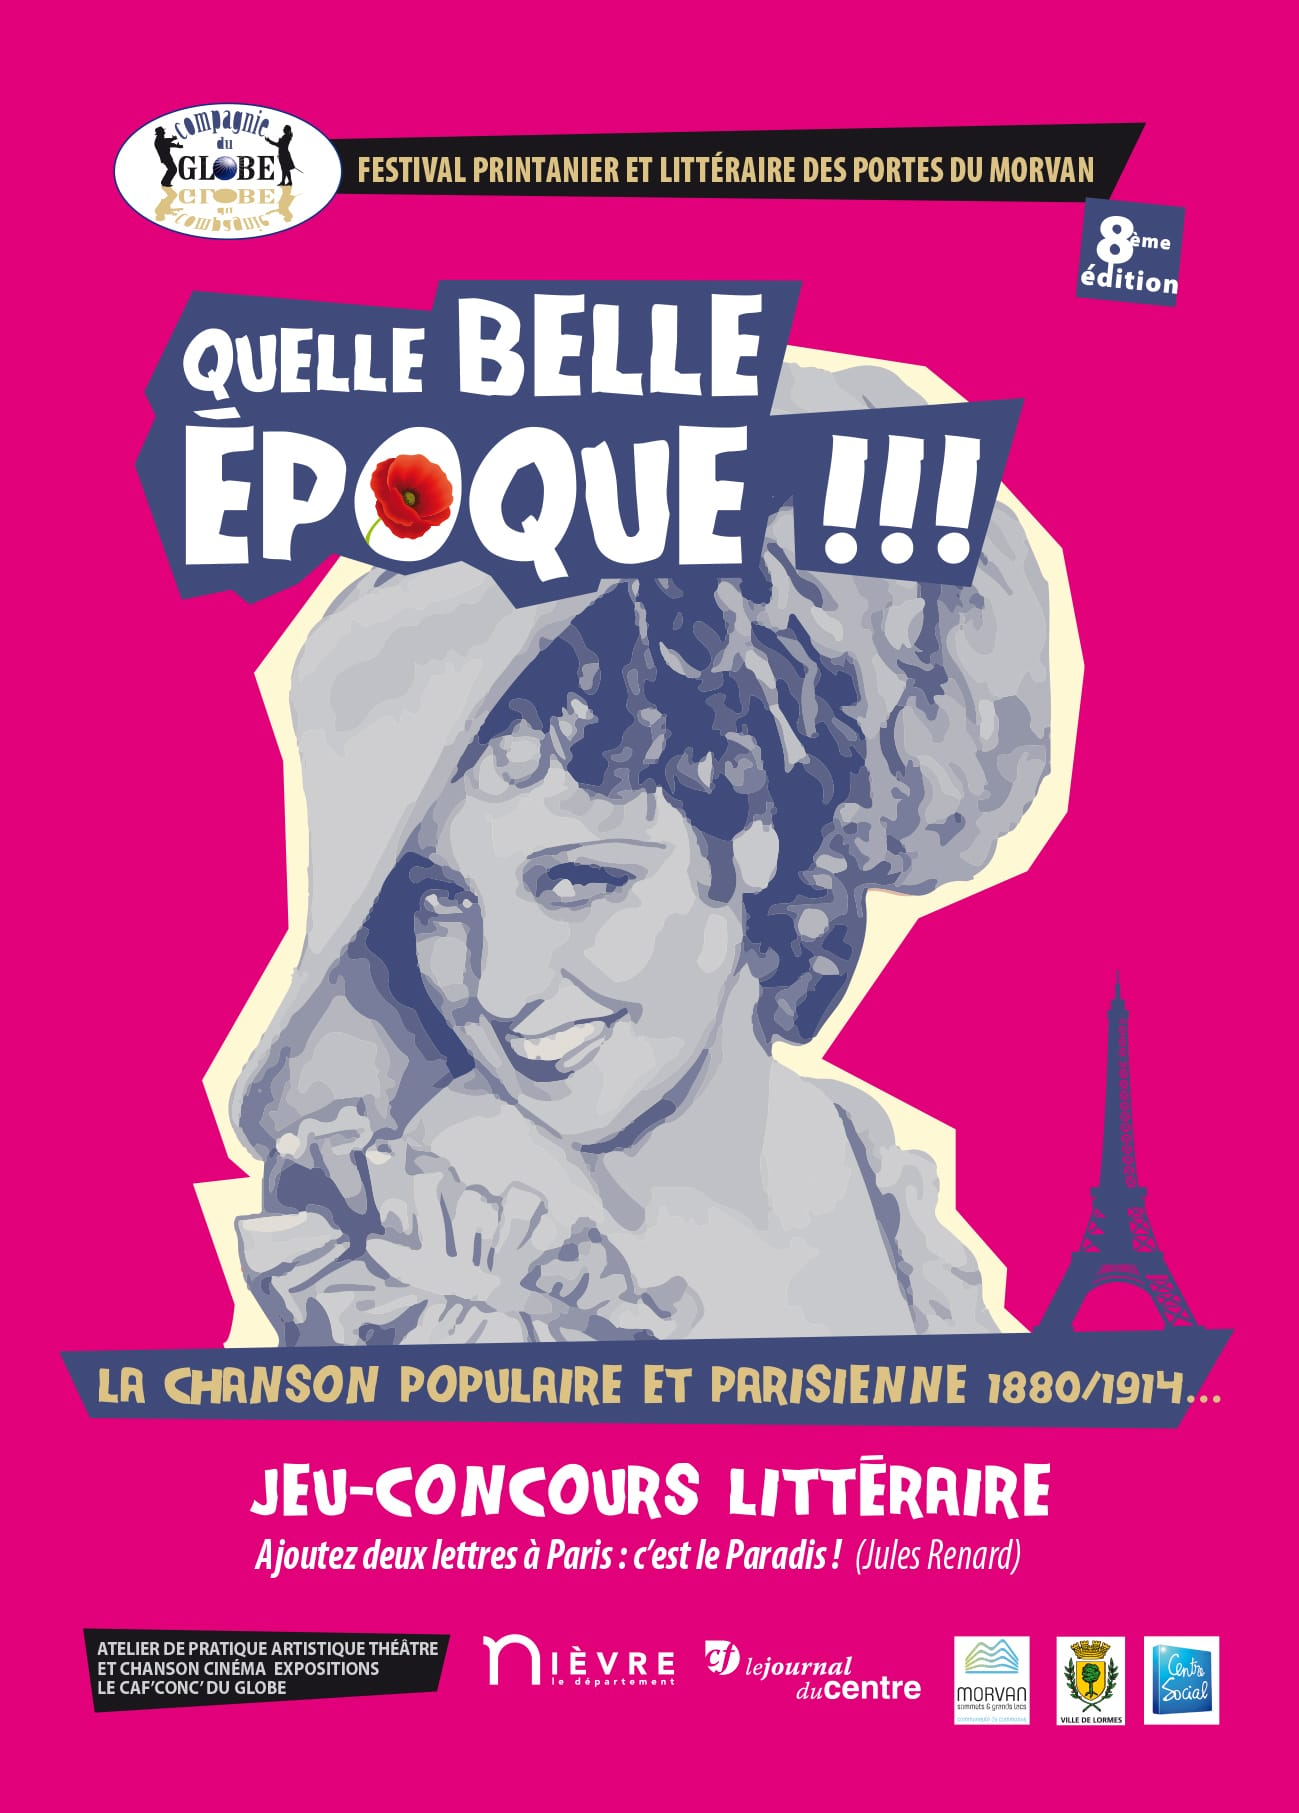 belle-epoque-flyer-a4-p1-hdprint-copie